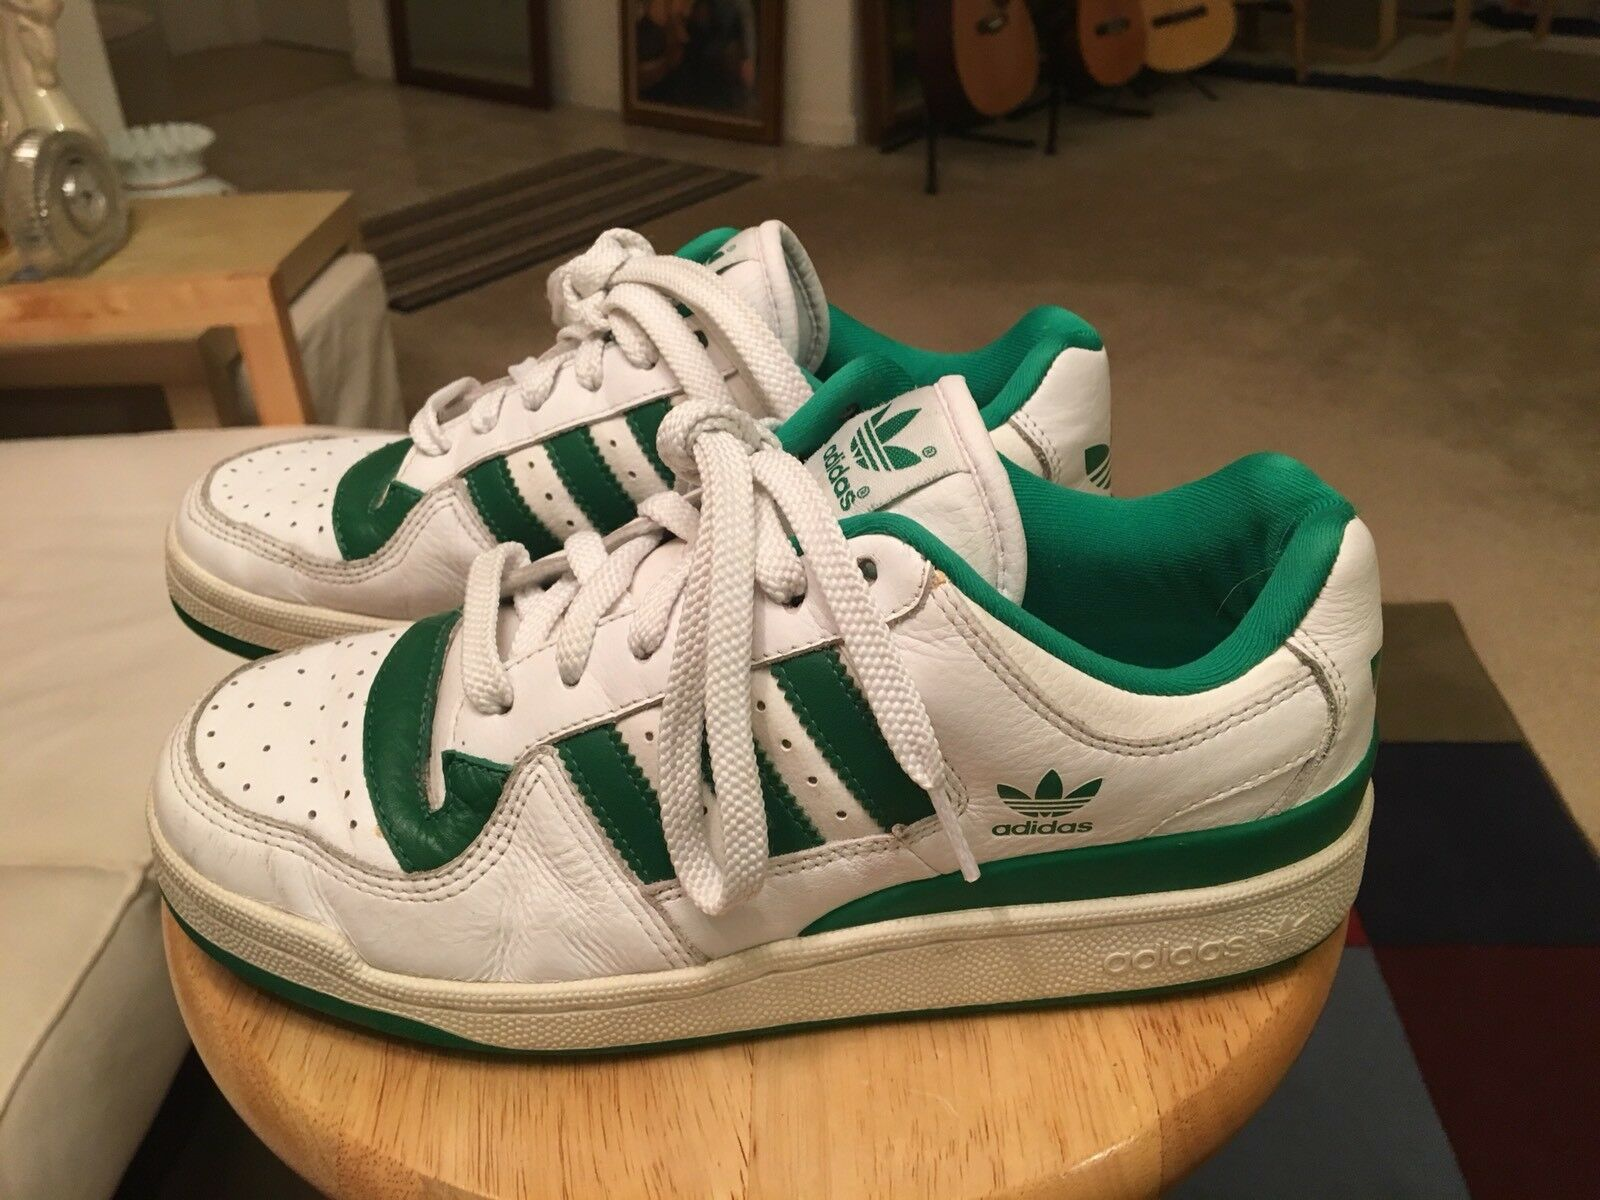 Vintage Adidas PWC681001 White/Green Trim Men's US8.5 Leather Athletic Shoes